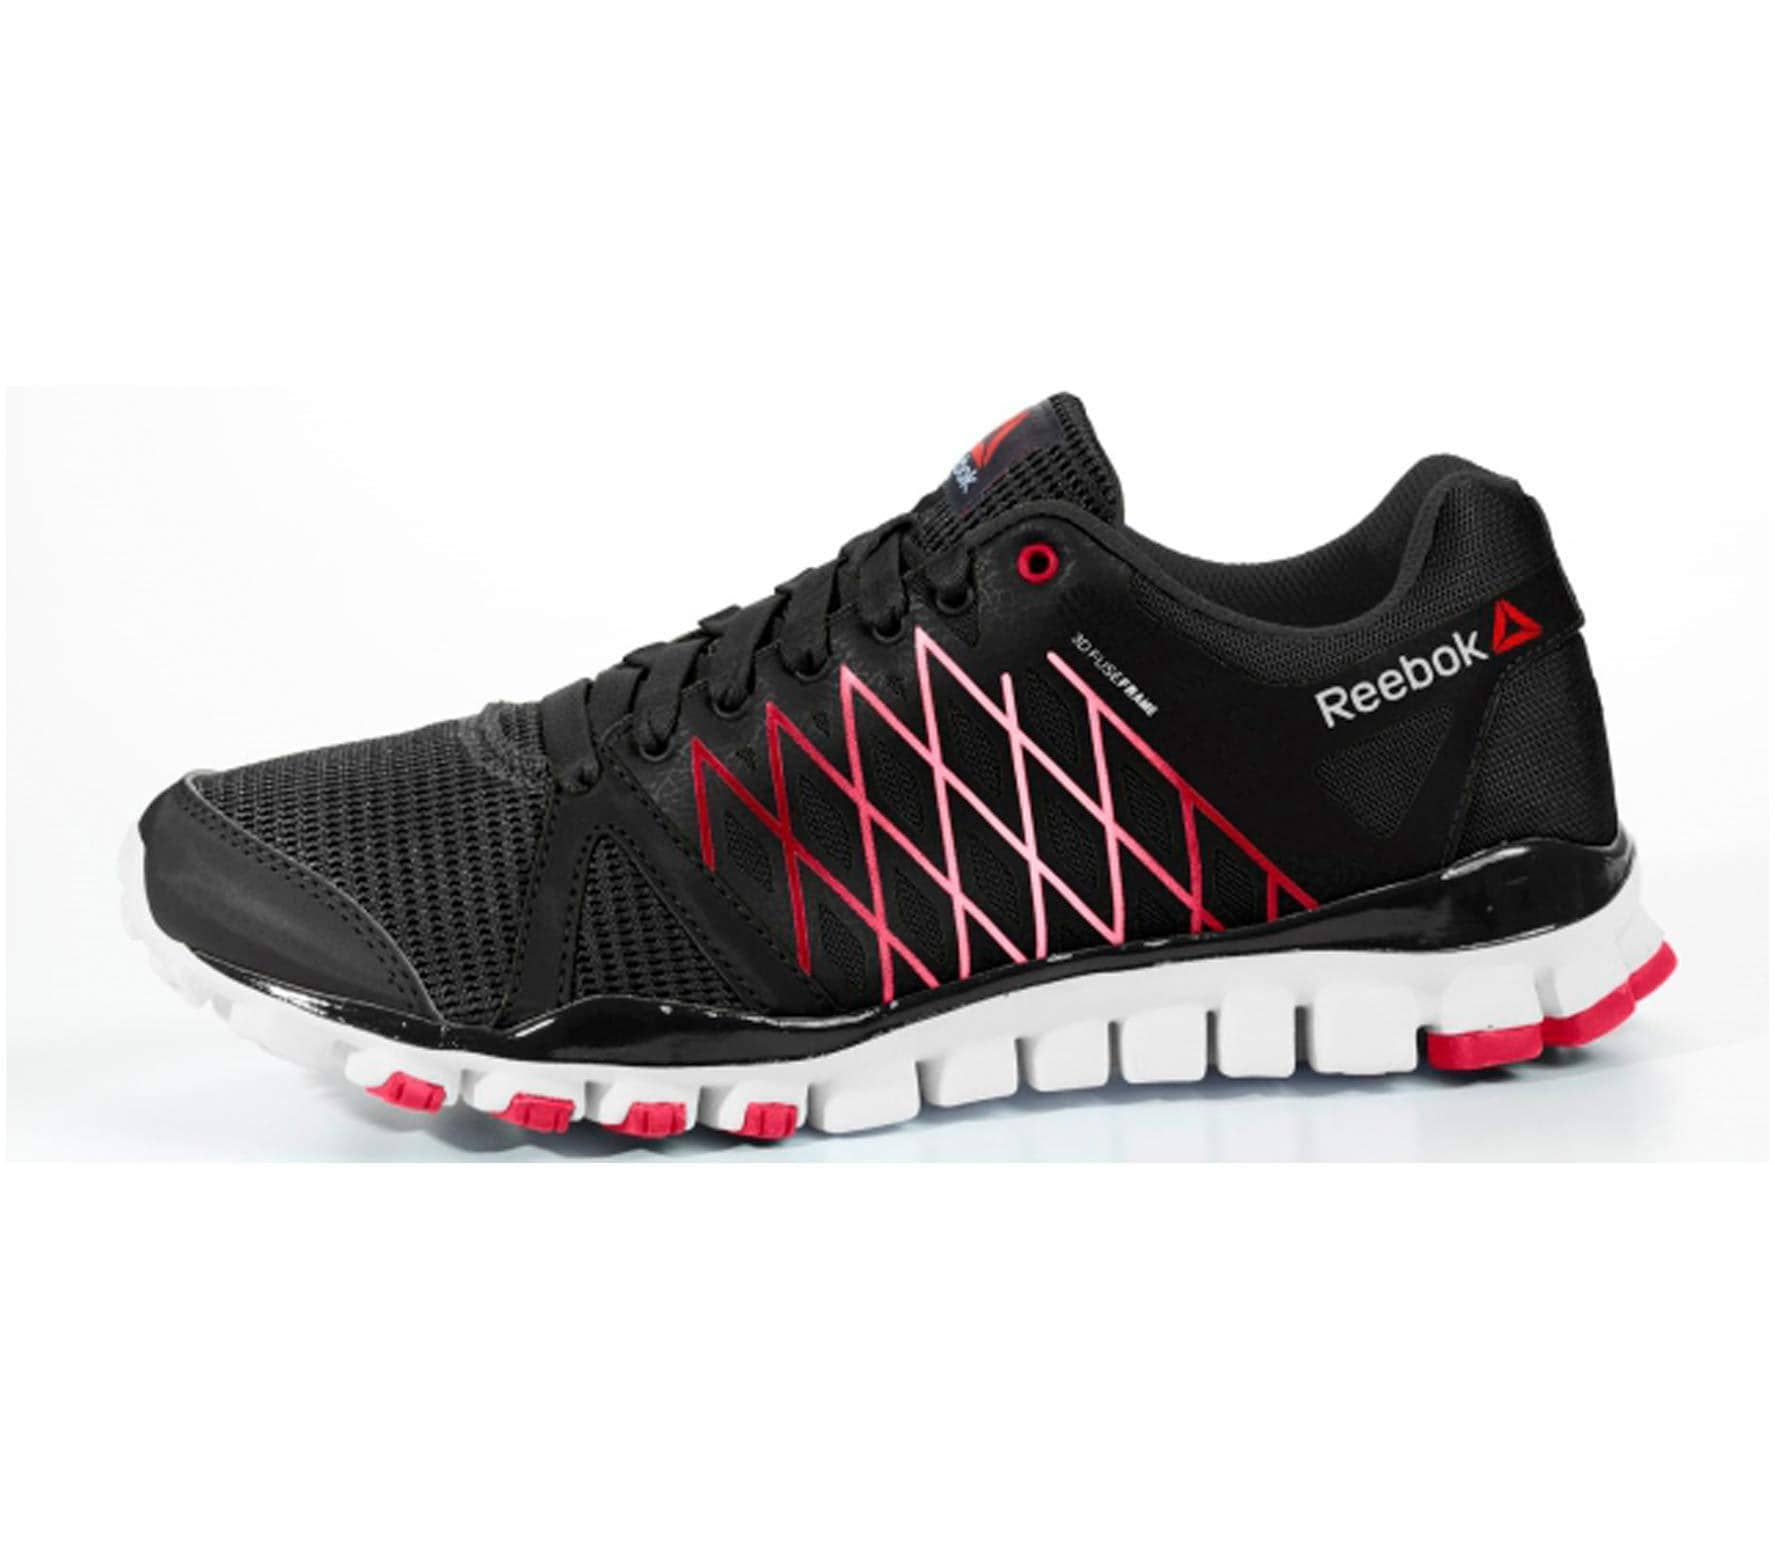 reebok realflex advance tr 20 ds dames training shoe